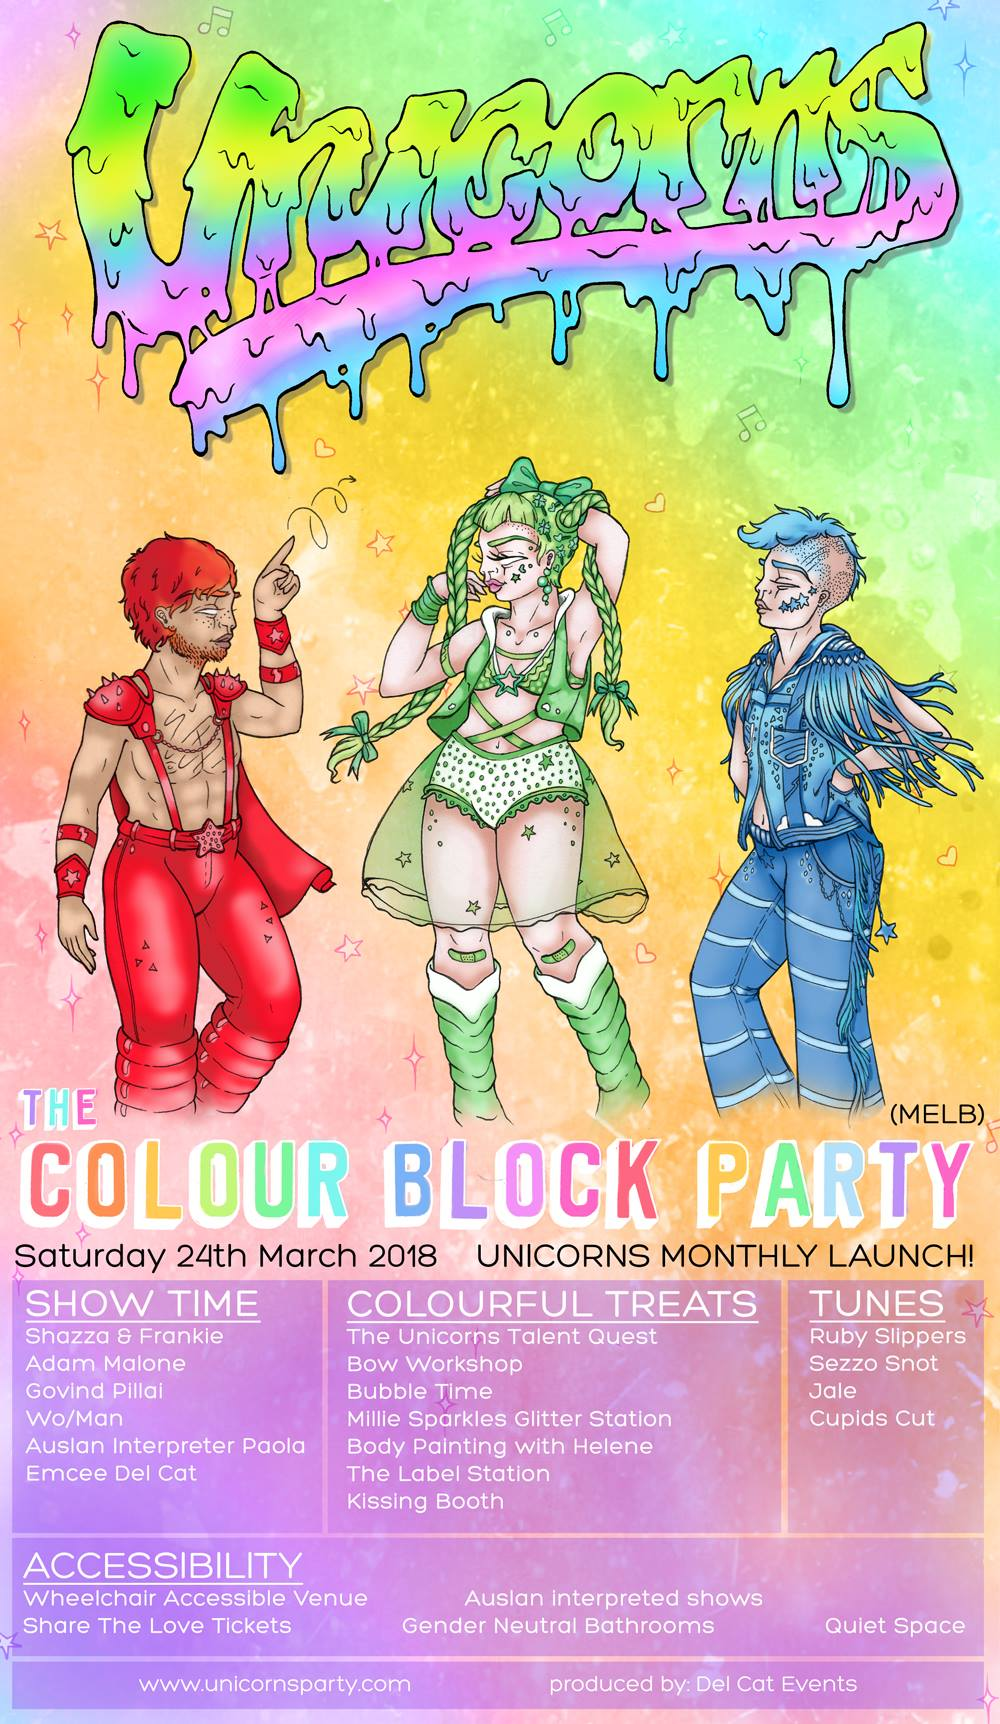 Unicorns - A Colour Block Party (MELB) - Saturday 24 March 2018Rubix Warehouse8pm - 3amSOLD OUT